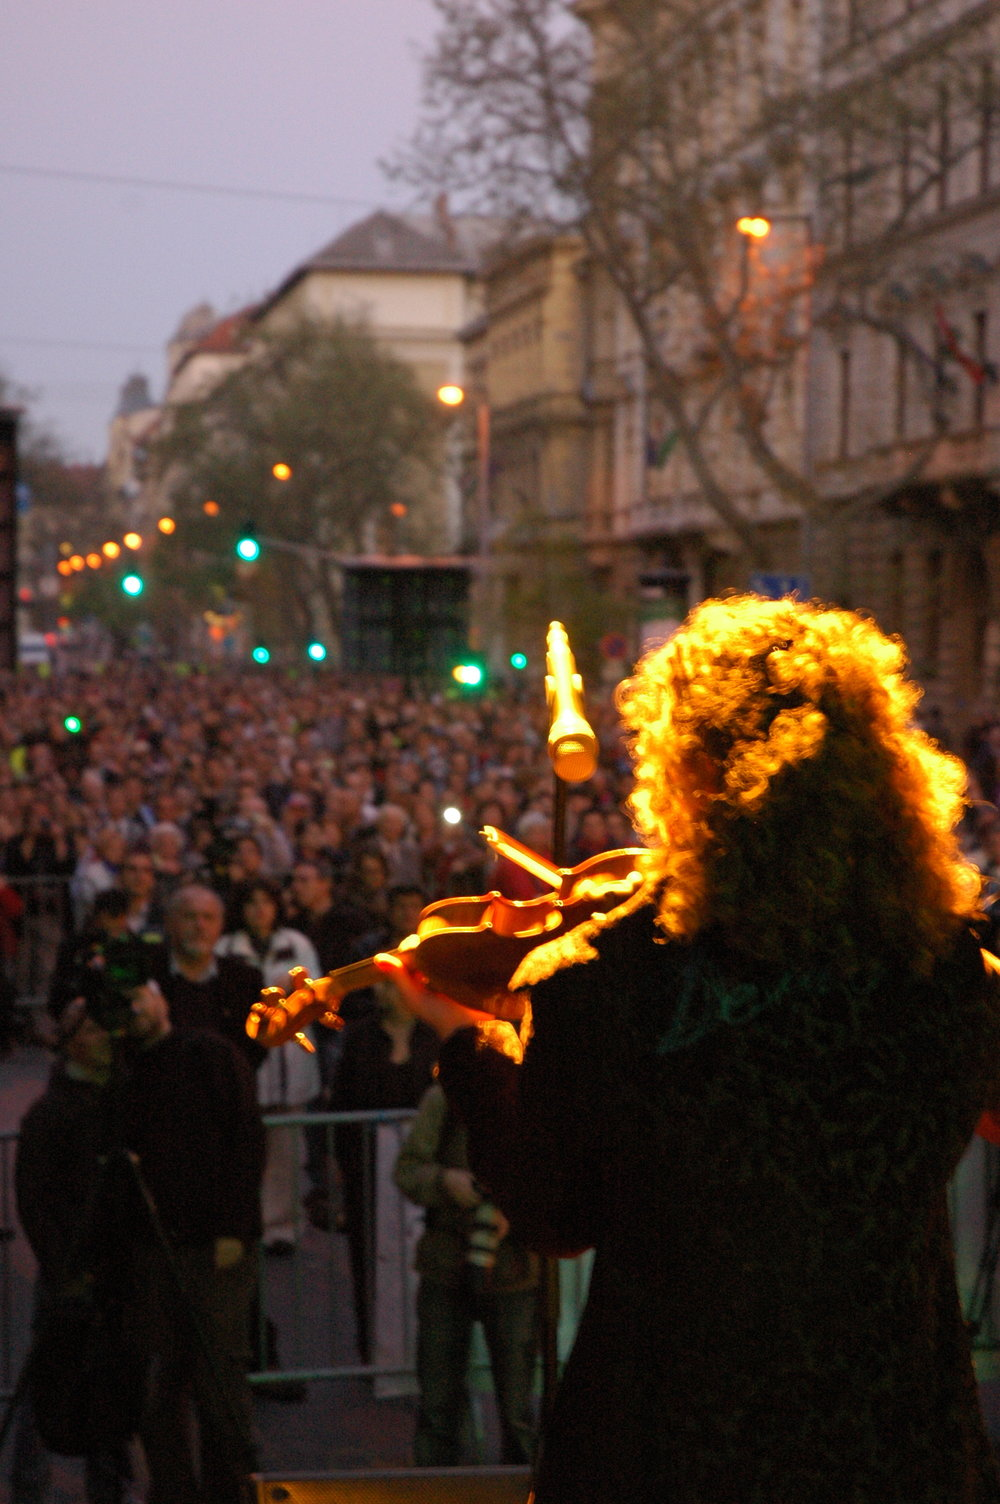 March of the living Budapest-Performing Kaddish in front of 16.000 people